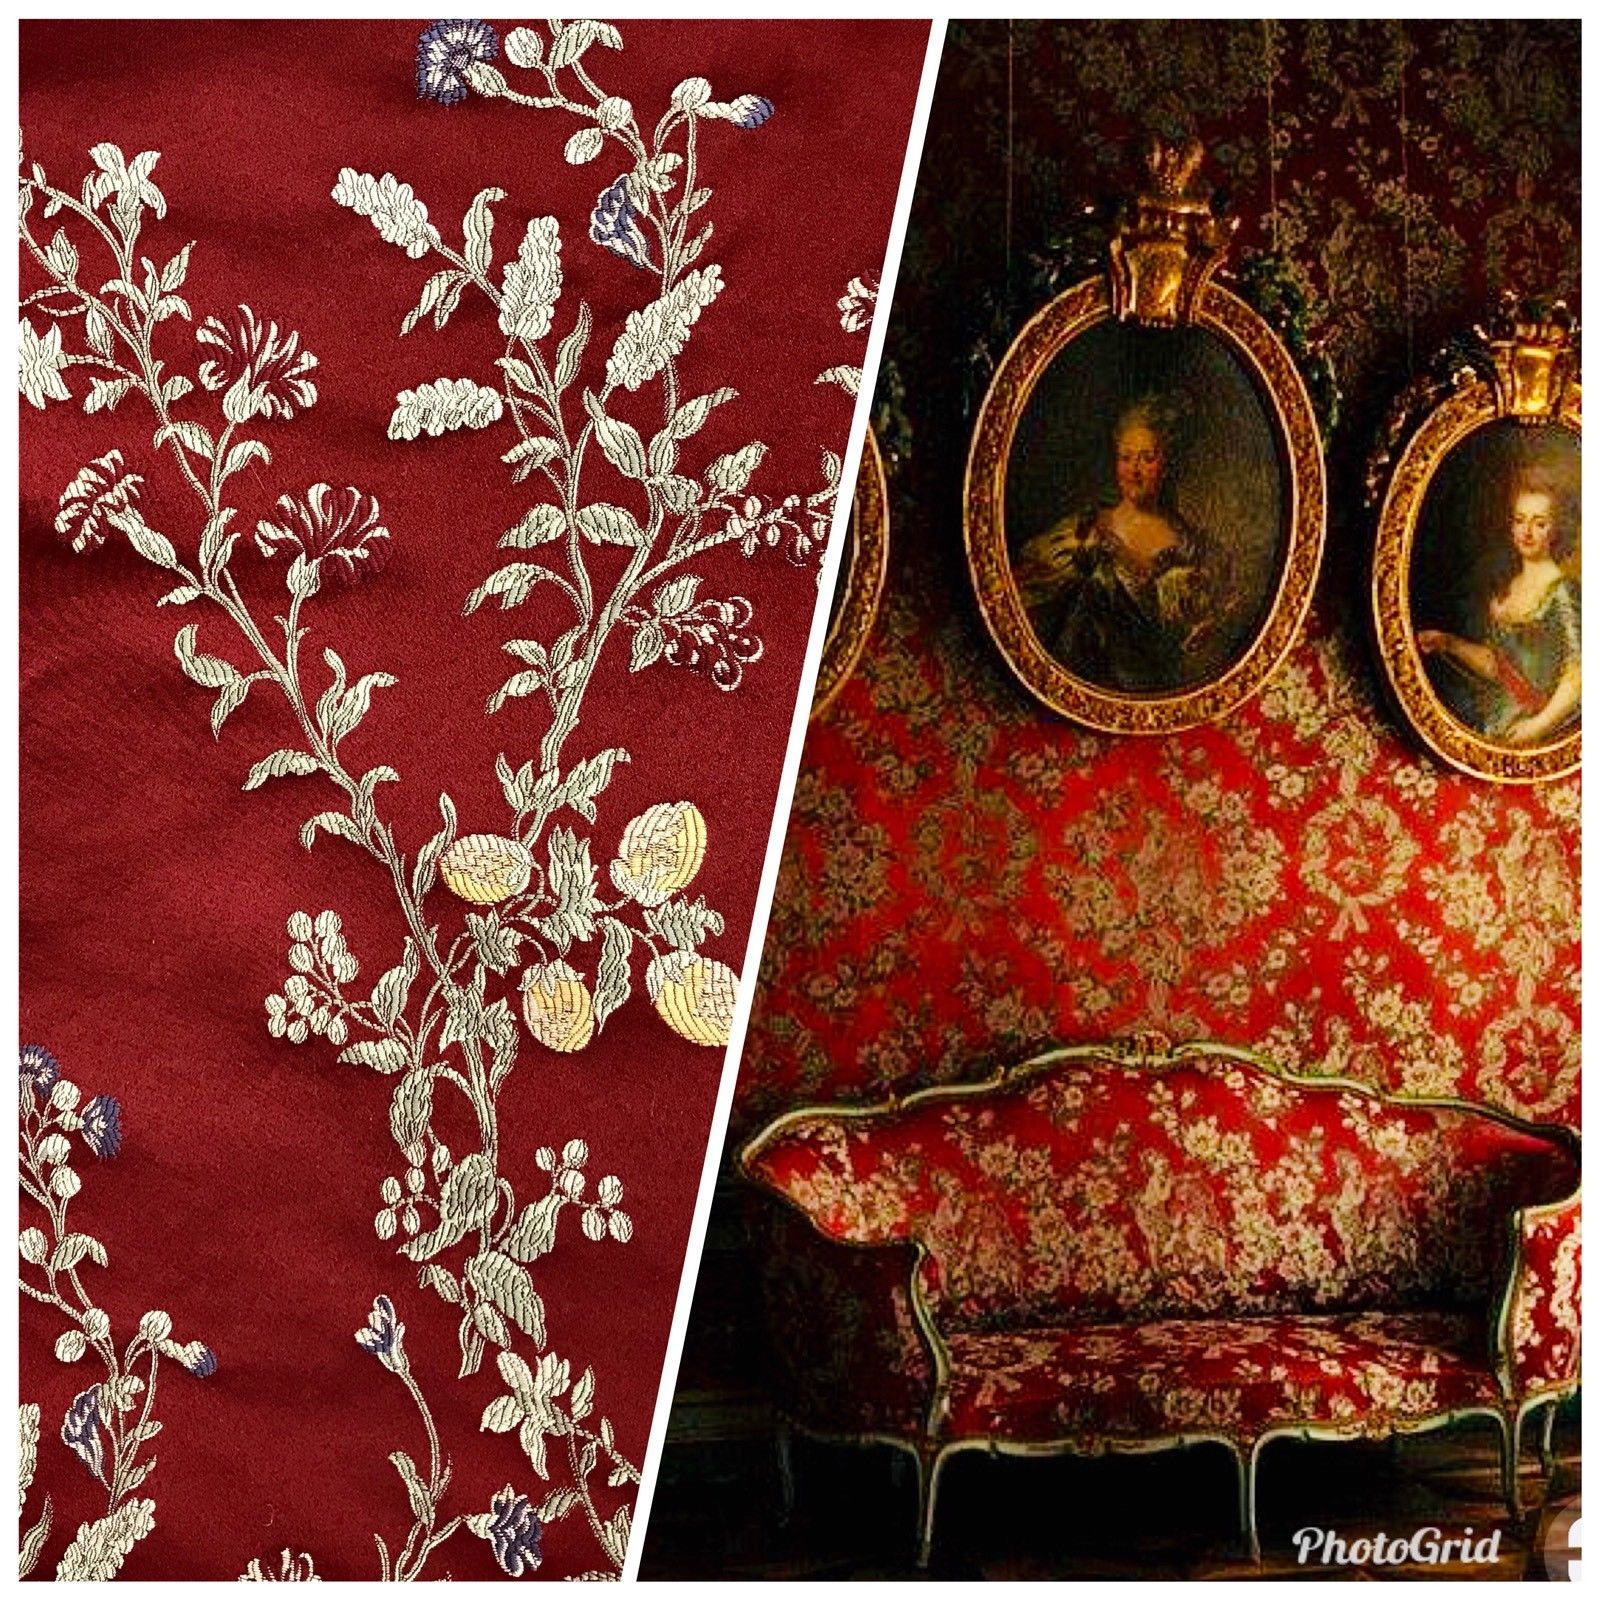 SWATCH Brocade Jacquard Satin Fabric - Dark Red Upholstery Damask - Fancy Styles Fabric Boutique